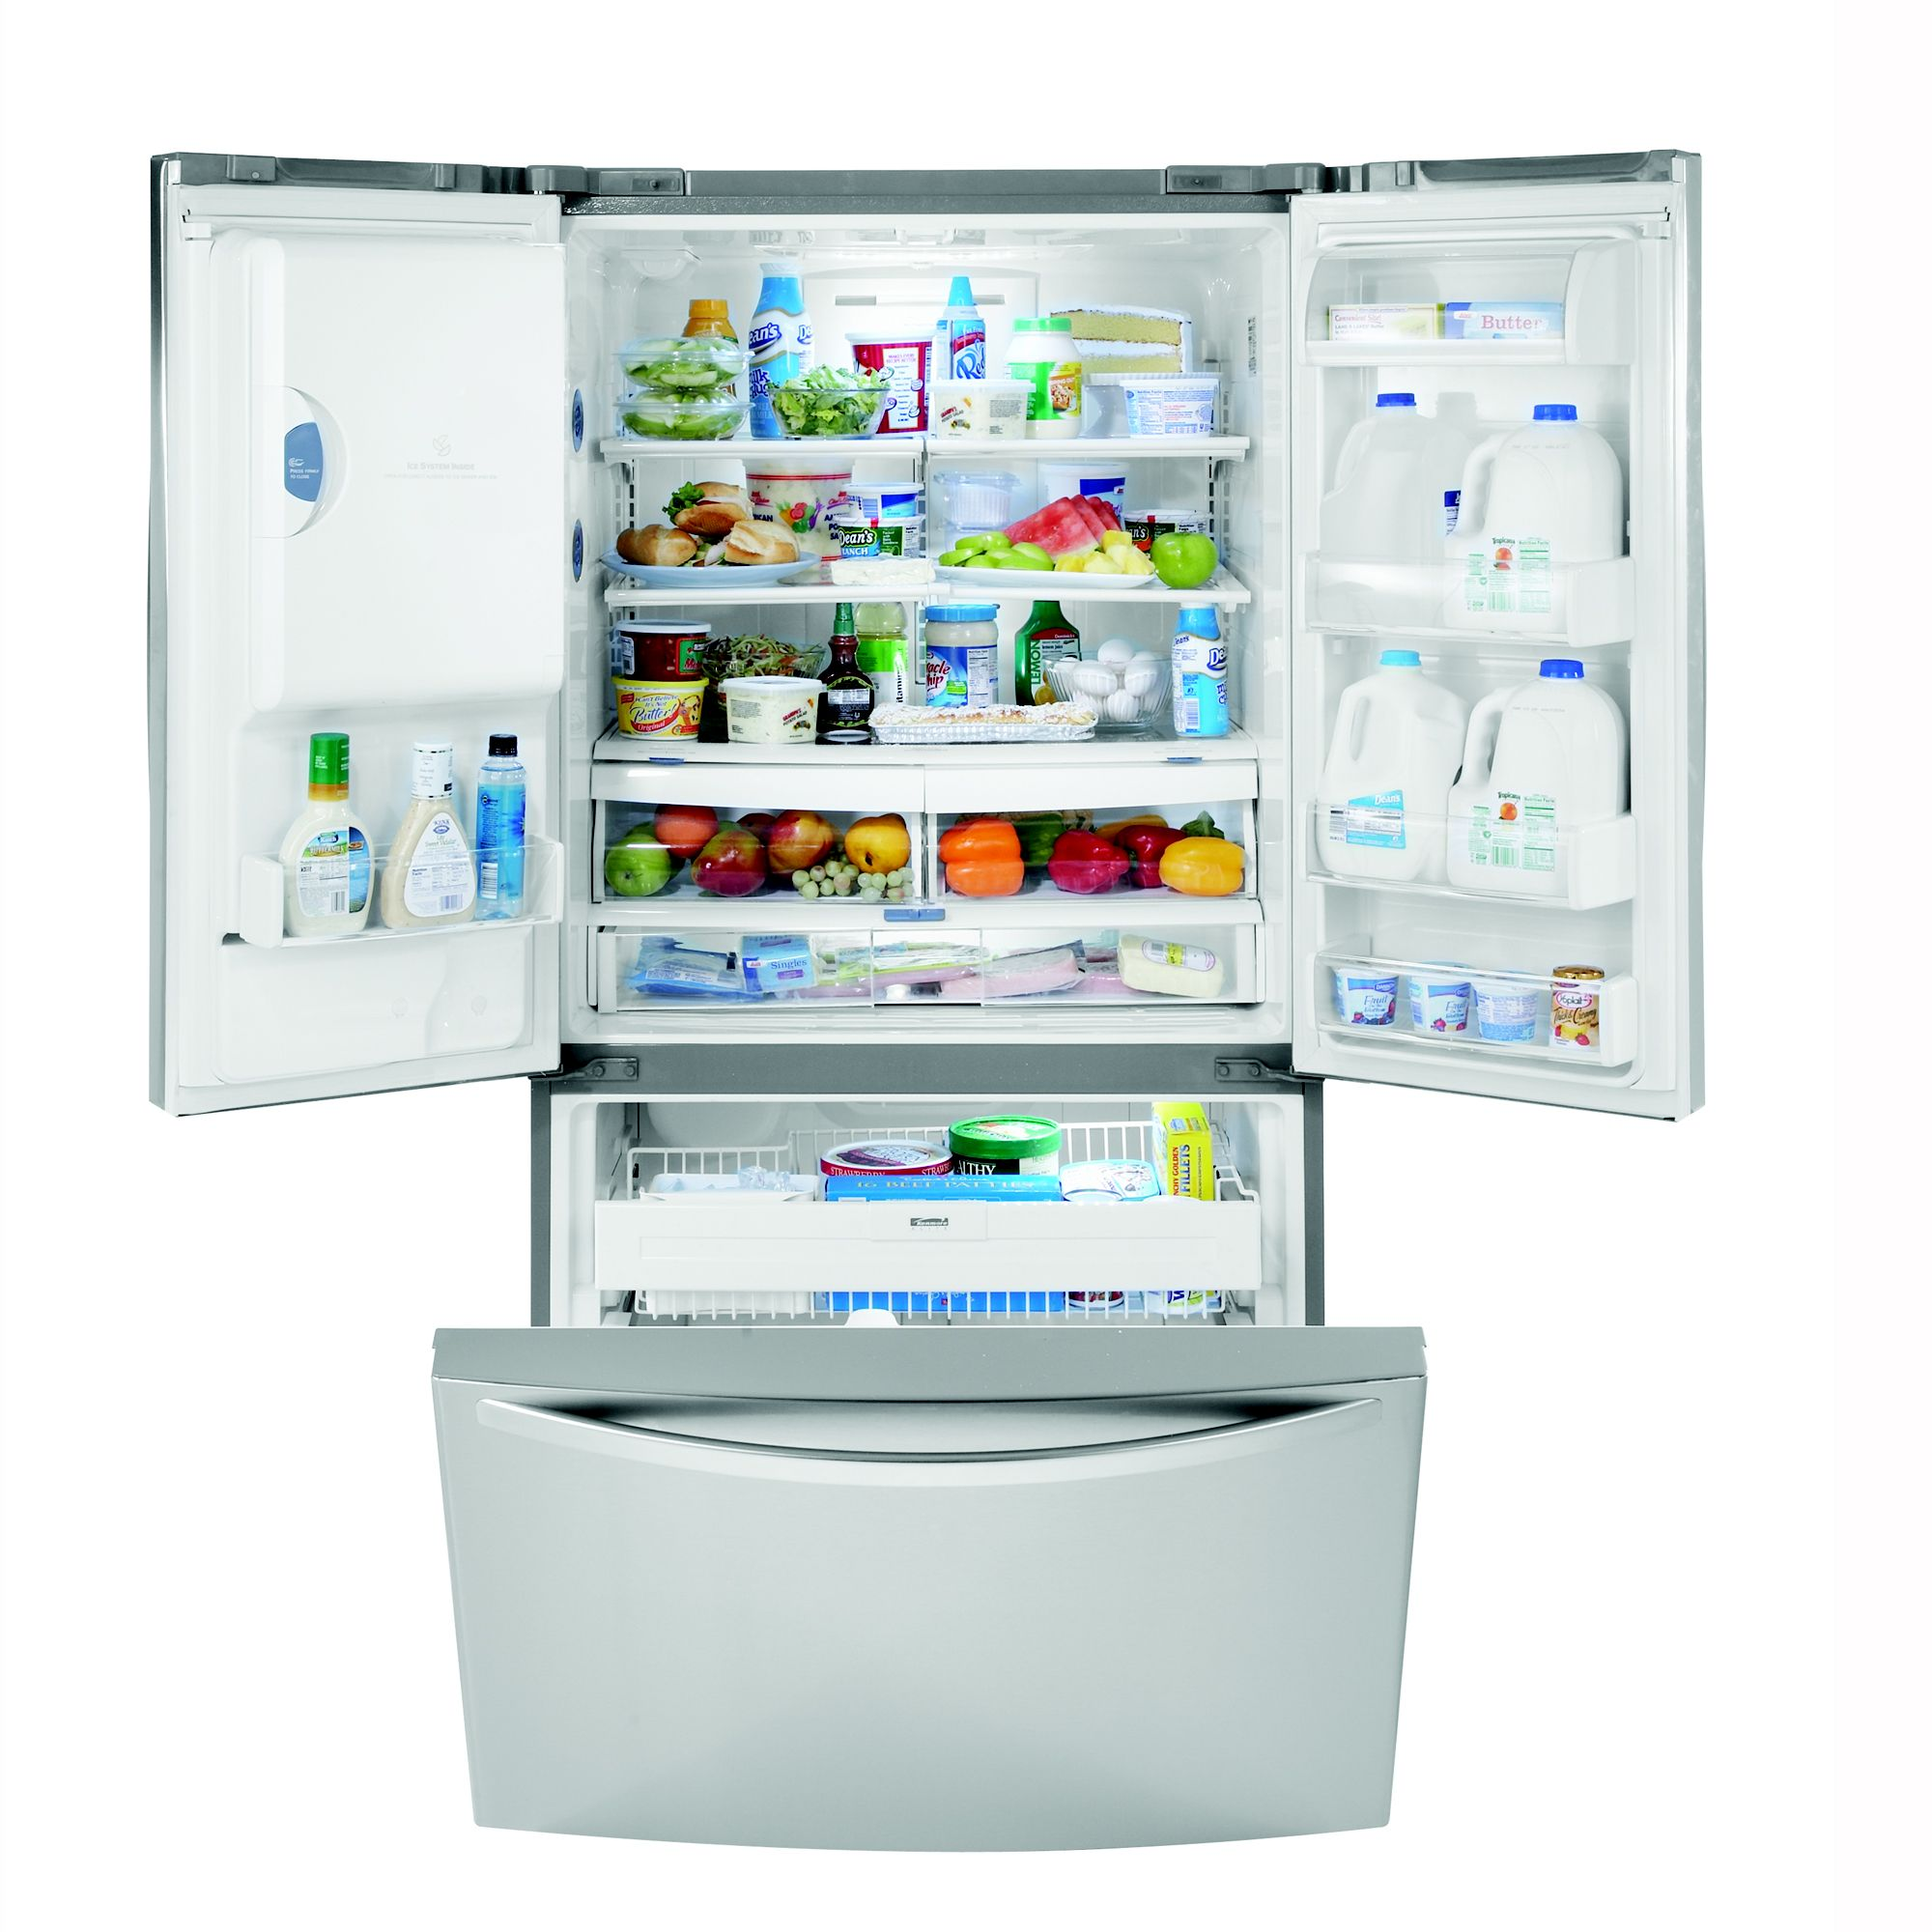 Kenmore Elite 25.0 cu. ft. French-Door Refrigerator w/ Ice & Water Dispenser